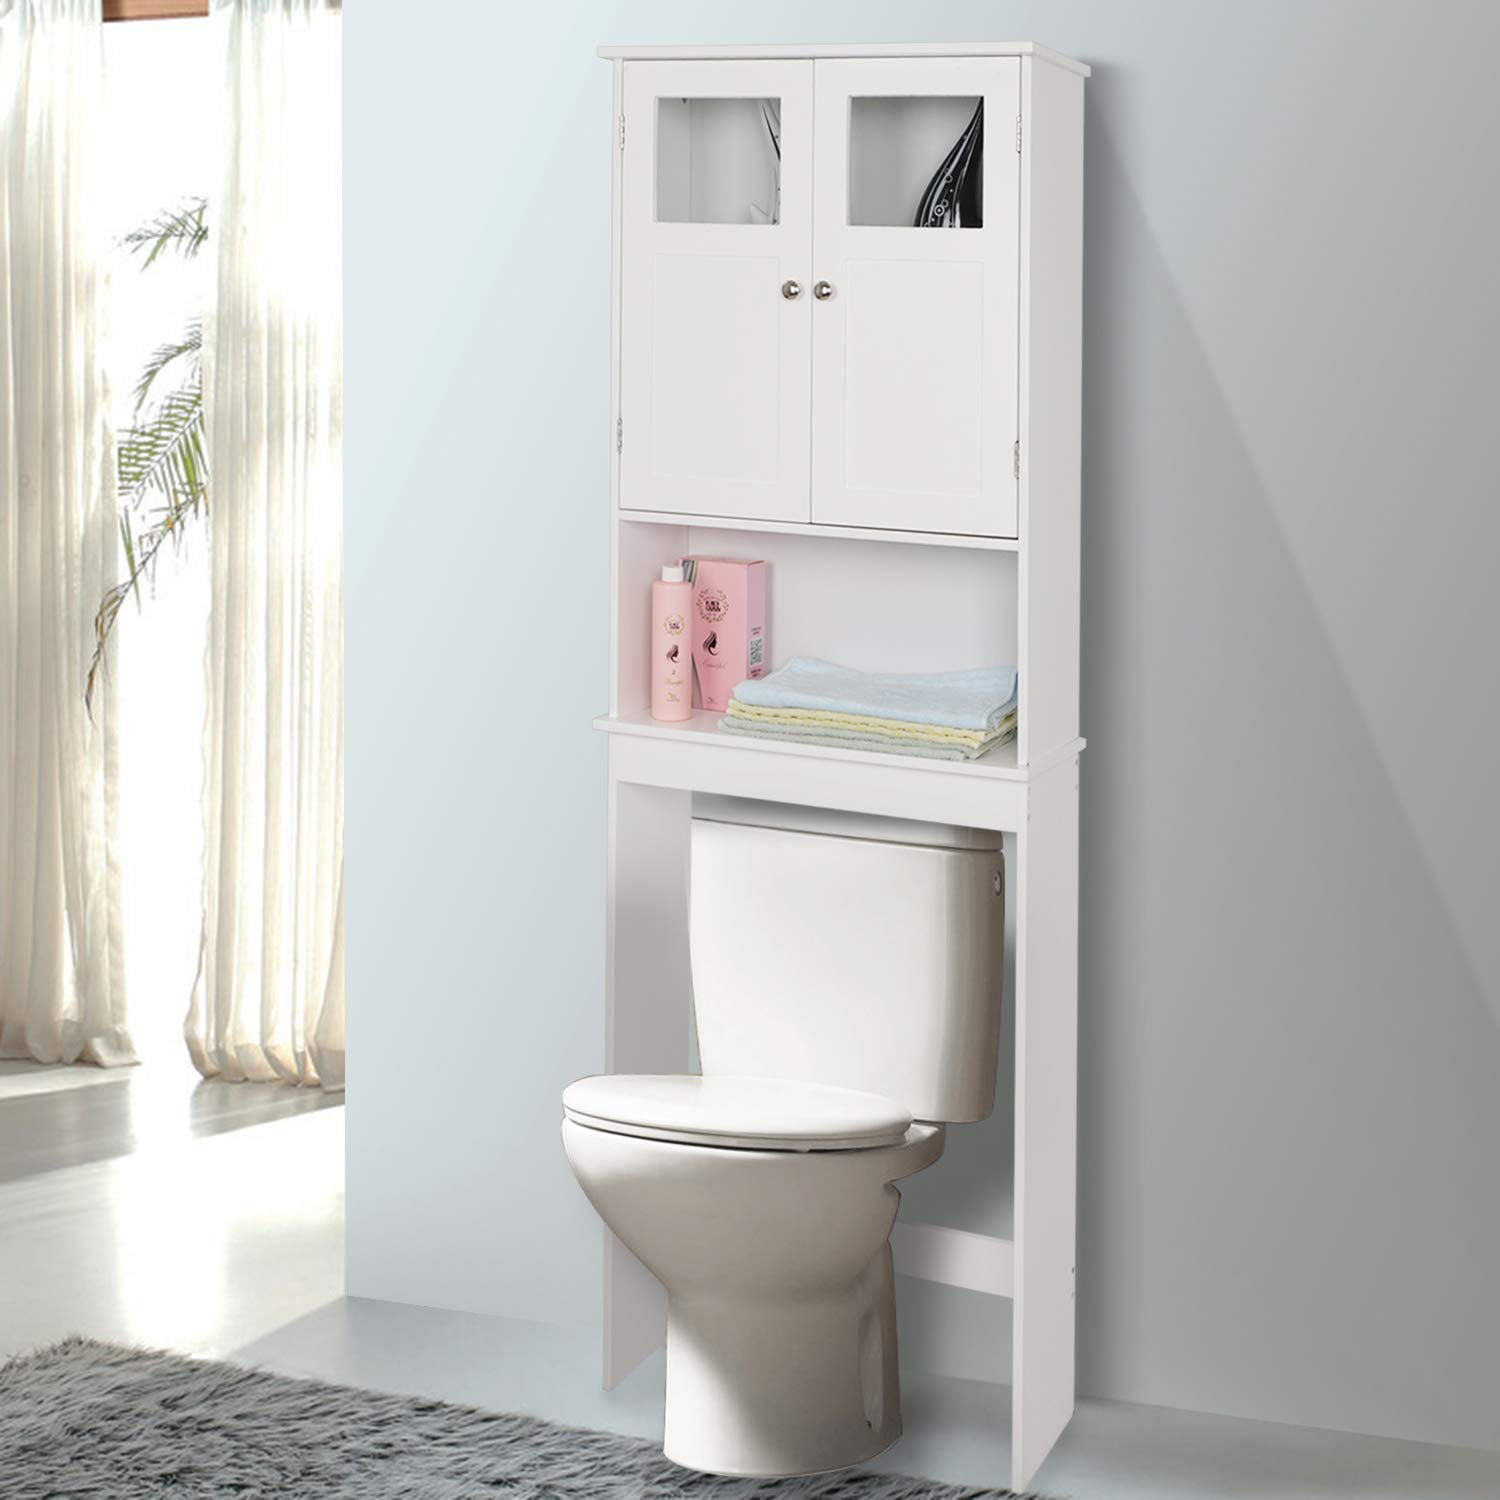 home over toilet storage, bathroom space saver with double